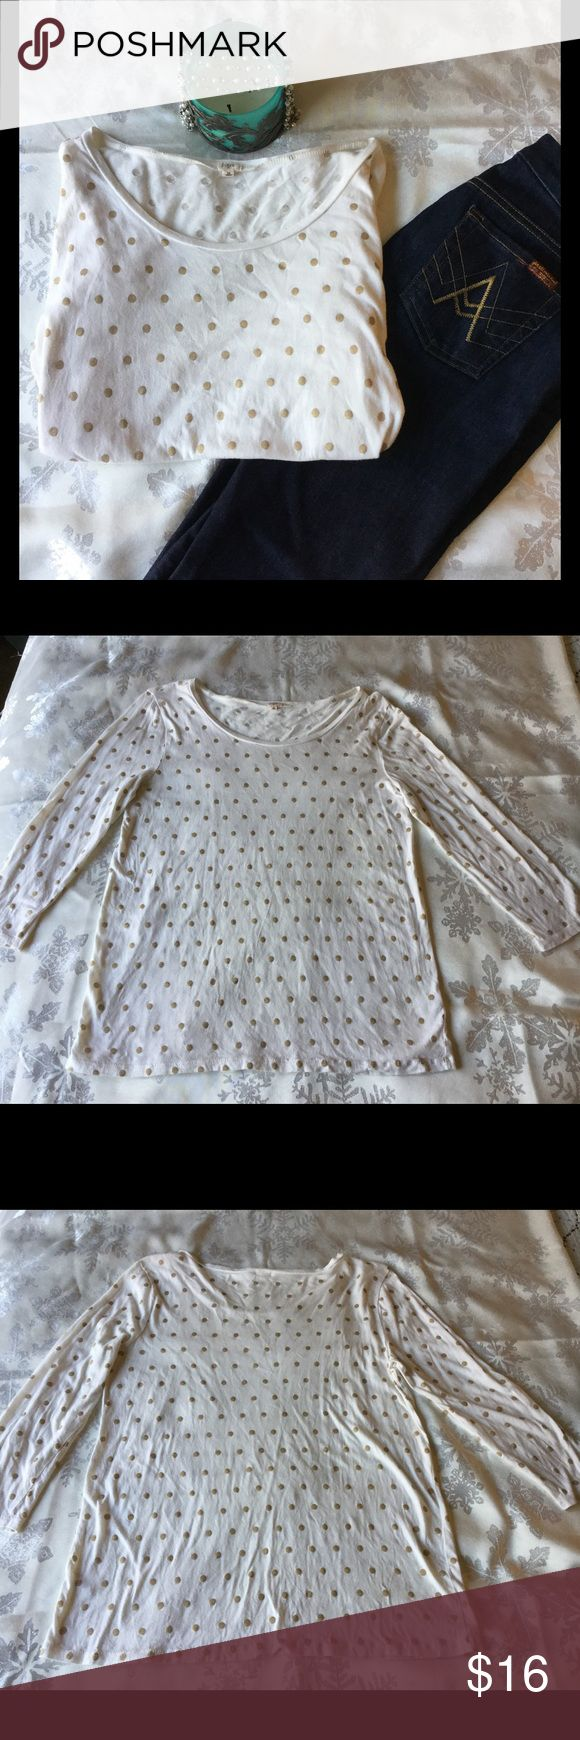 """J Crew white and gold polka dot shirt J Crew white shirt with gold polka dots, 60% cotton, 40% modal. Sleeve length 19 1/2"""". Used good condition. J. Crew Tops Tees - Long Sleeve"""